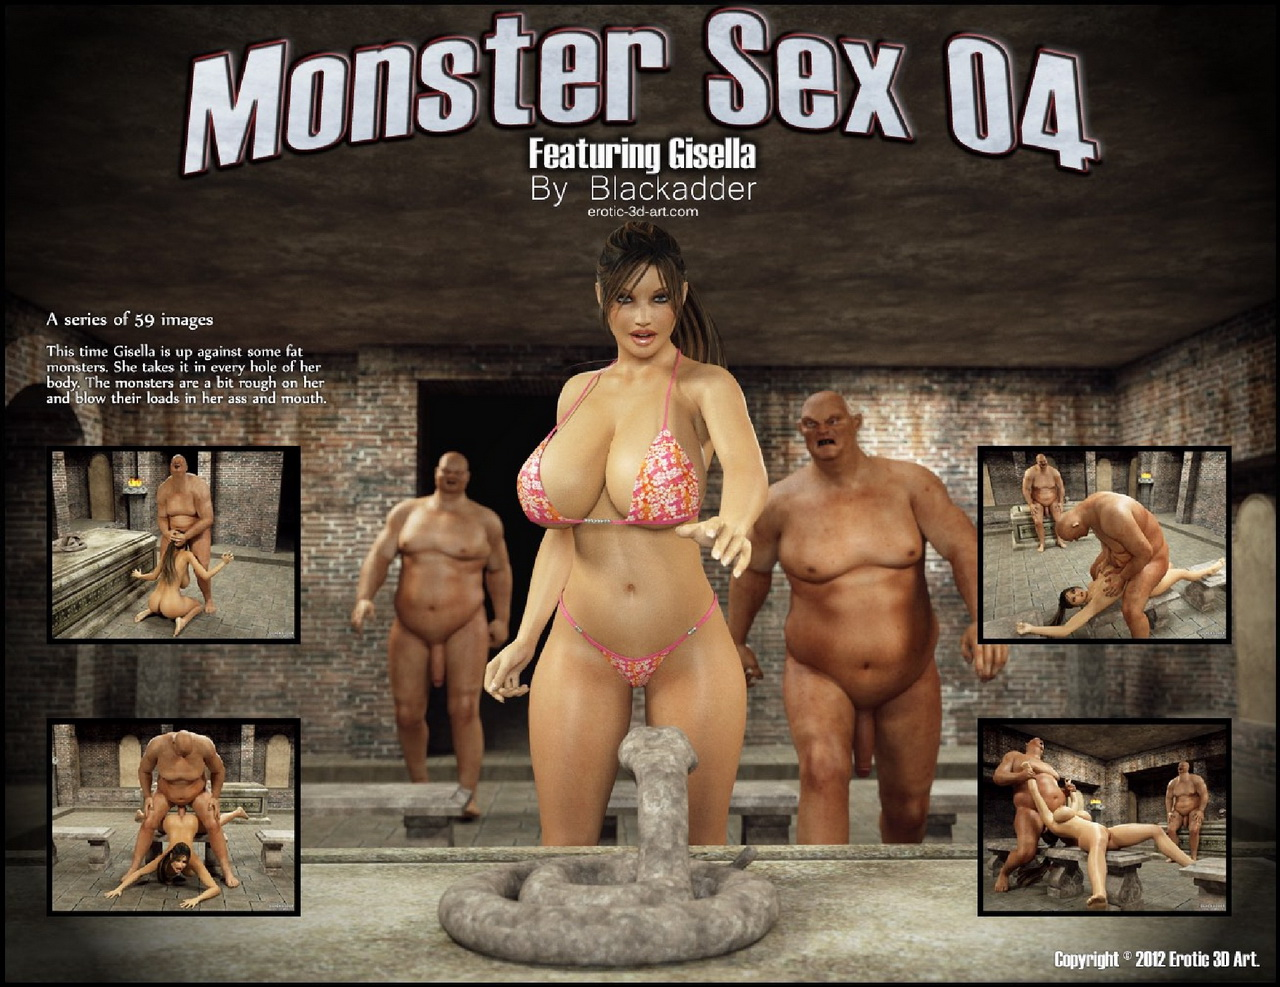 Monster Sex 04